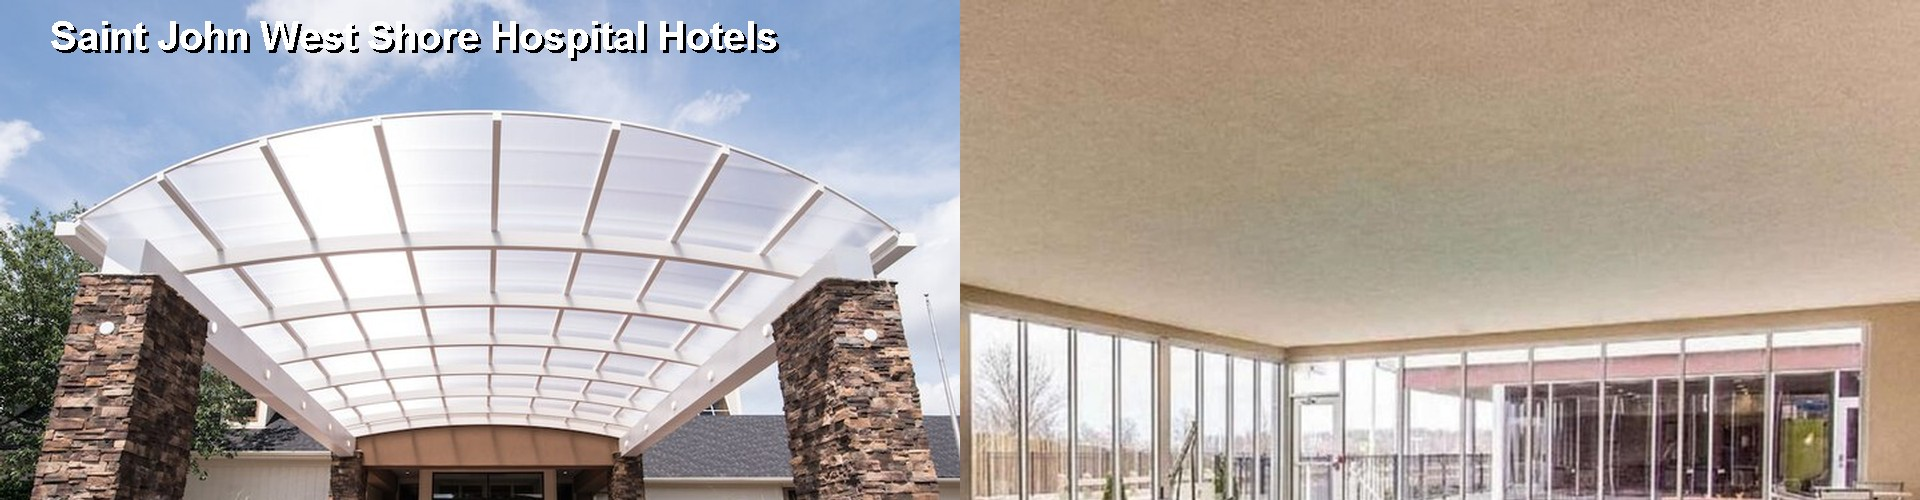 5 Best Hotels near Saint John West Shore Hospital